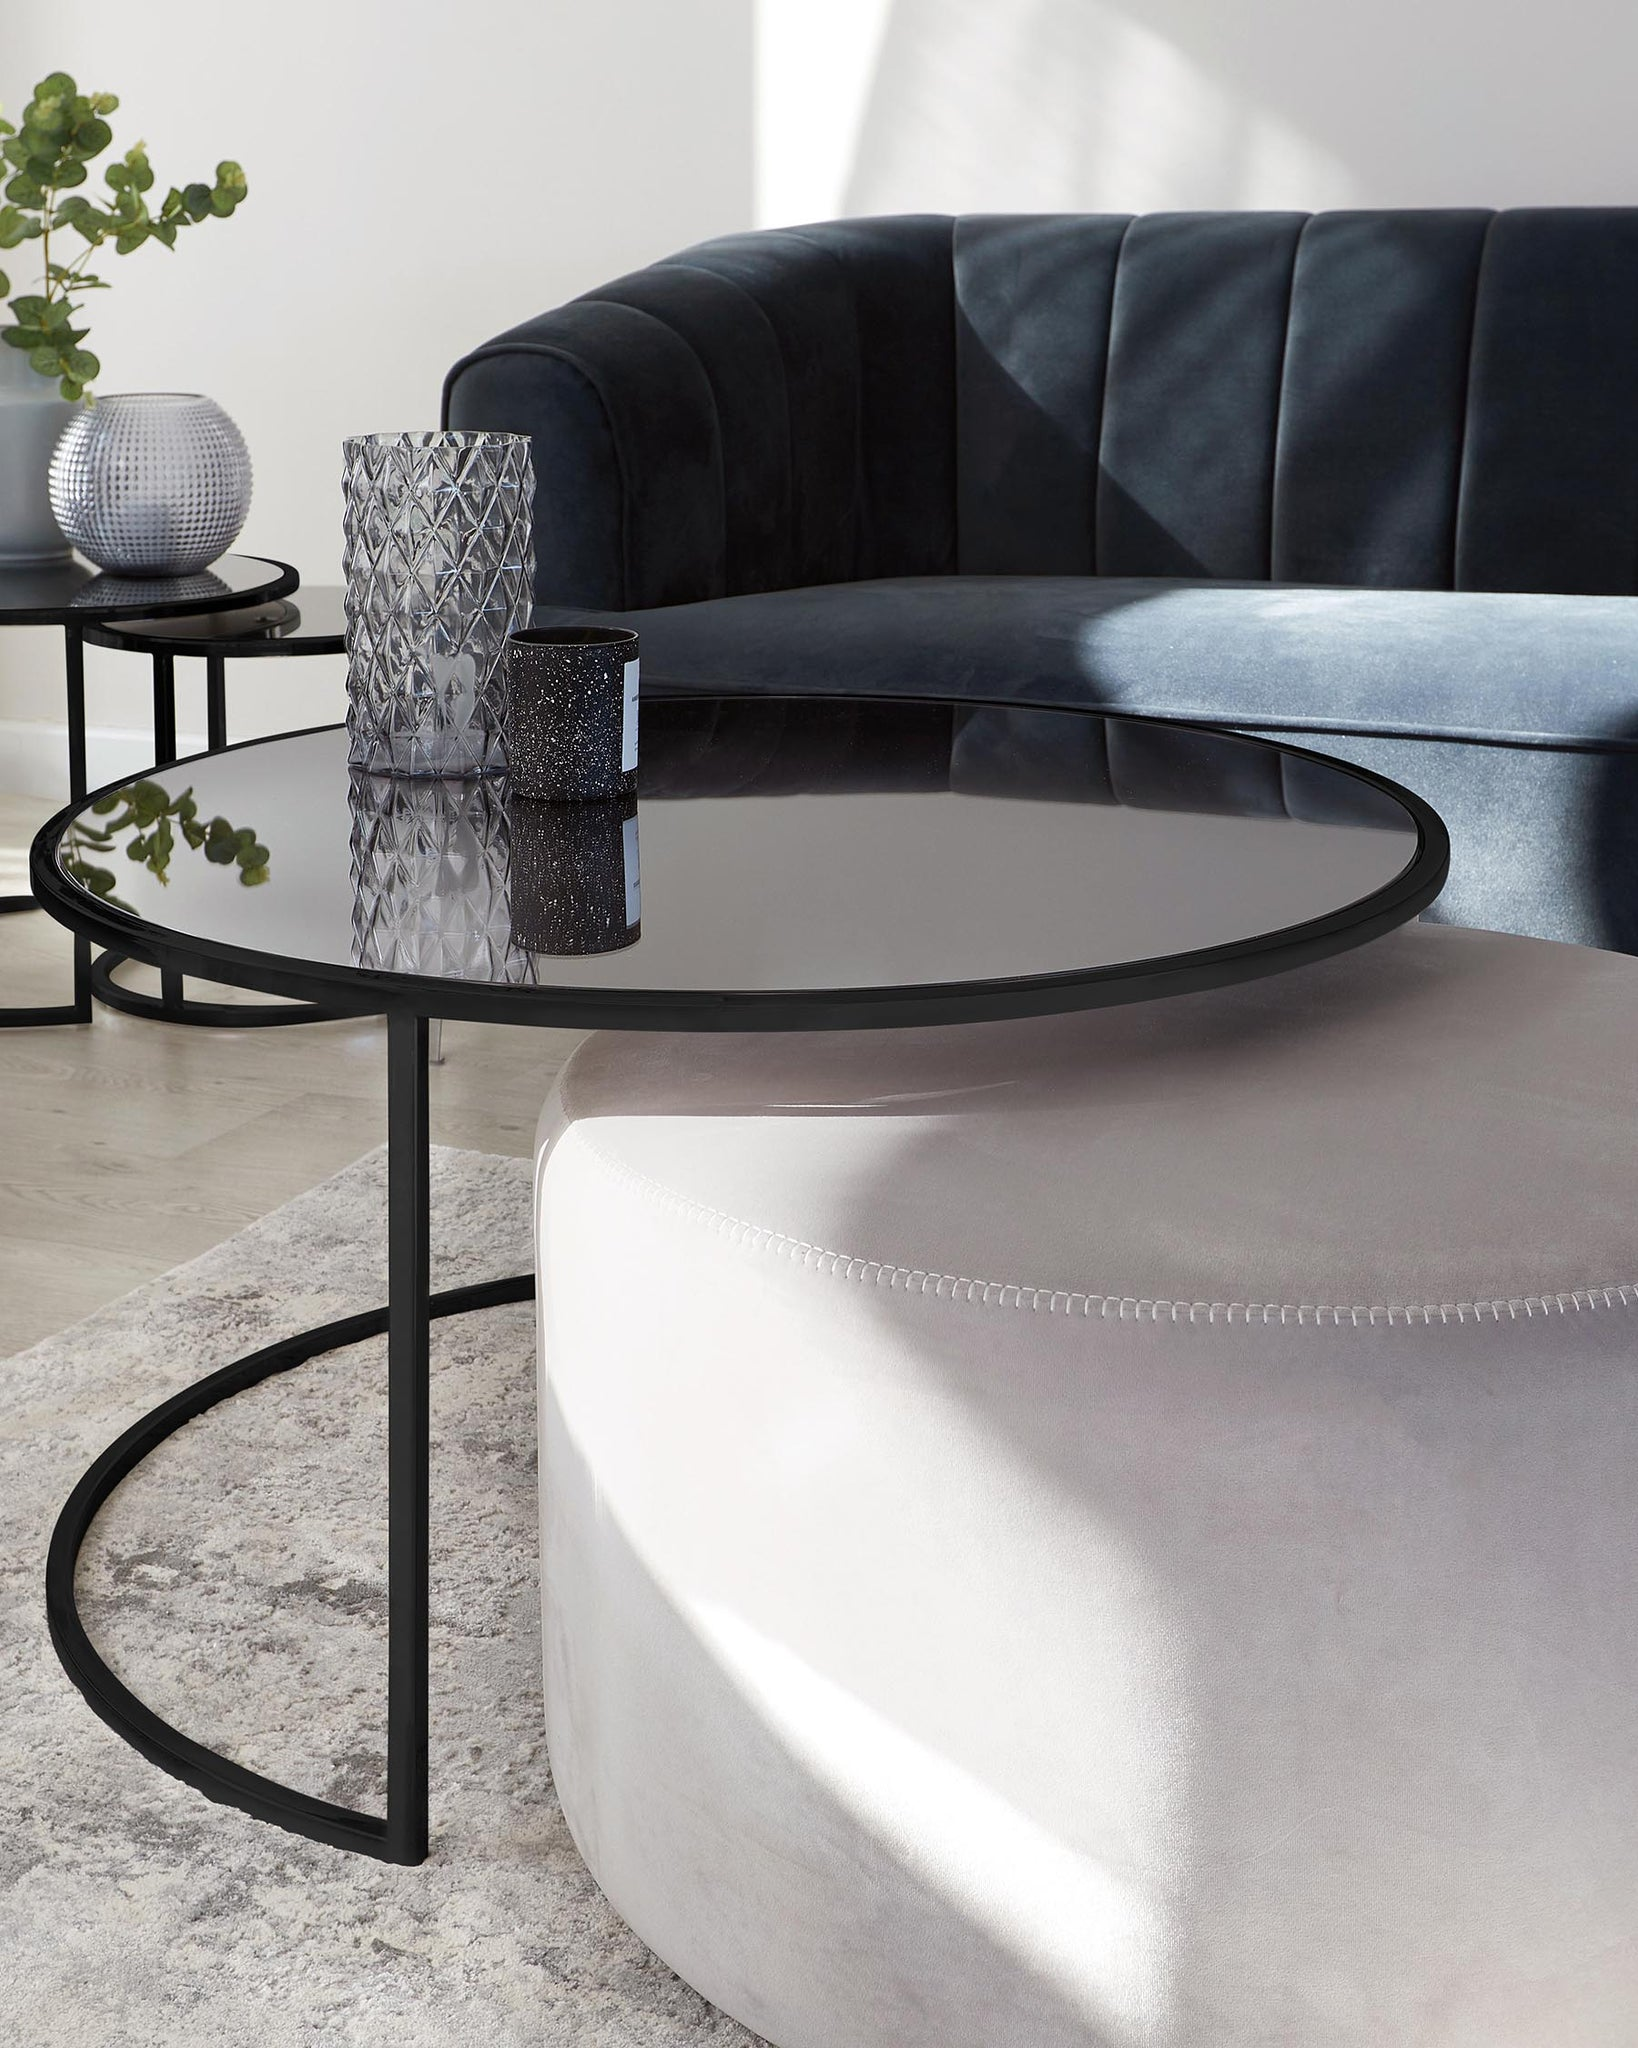 Thea Black Round Coffee Table and Light Grey Pouffe Set